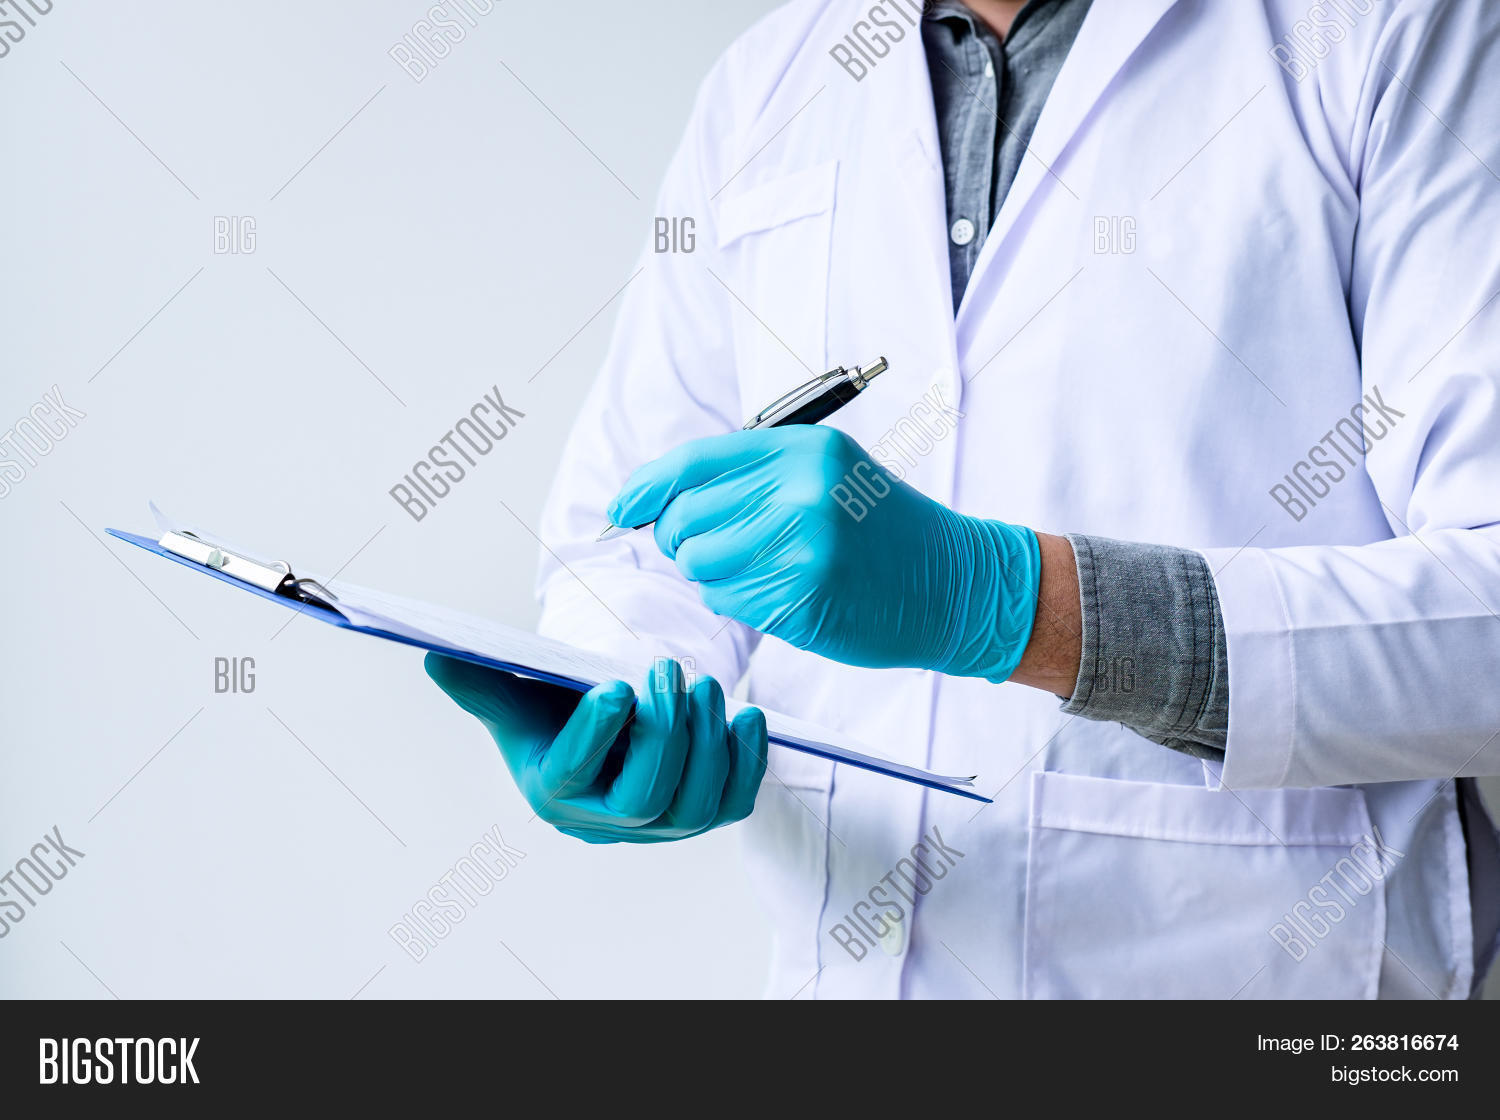 analysis,beaker,biochemistry,biotechnology,blue,chemical,chemistry,clinic,concentrate,development,discovery,dna,doctor,drip,drop,dropper,drug,education,equipment,experiment,glassware,health,hospital,industry,instrument,lab,laboratory,liquid,looking,mask,medical,medicine,molecule,pharmaceutical,pipette,preparation,professional,reagent,research,sample,science,scientific,scientist,solution,studying,test,transparent,tube,worker